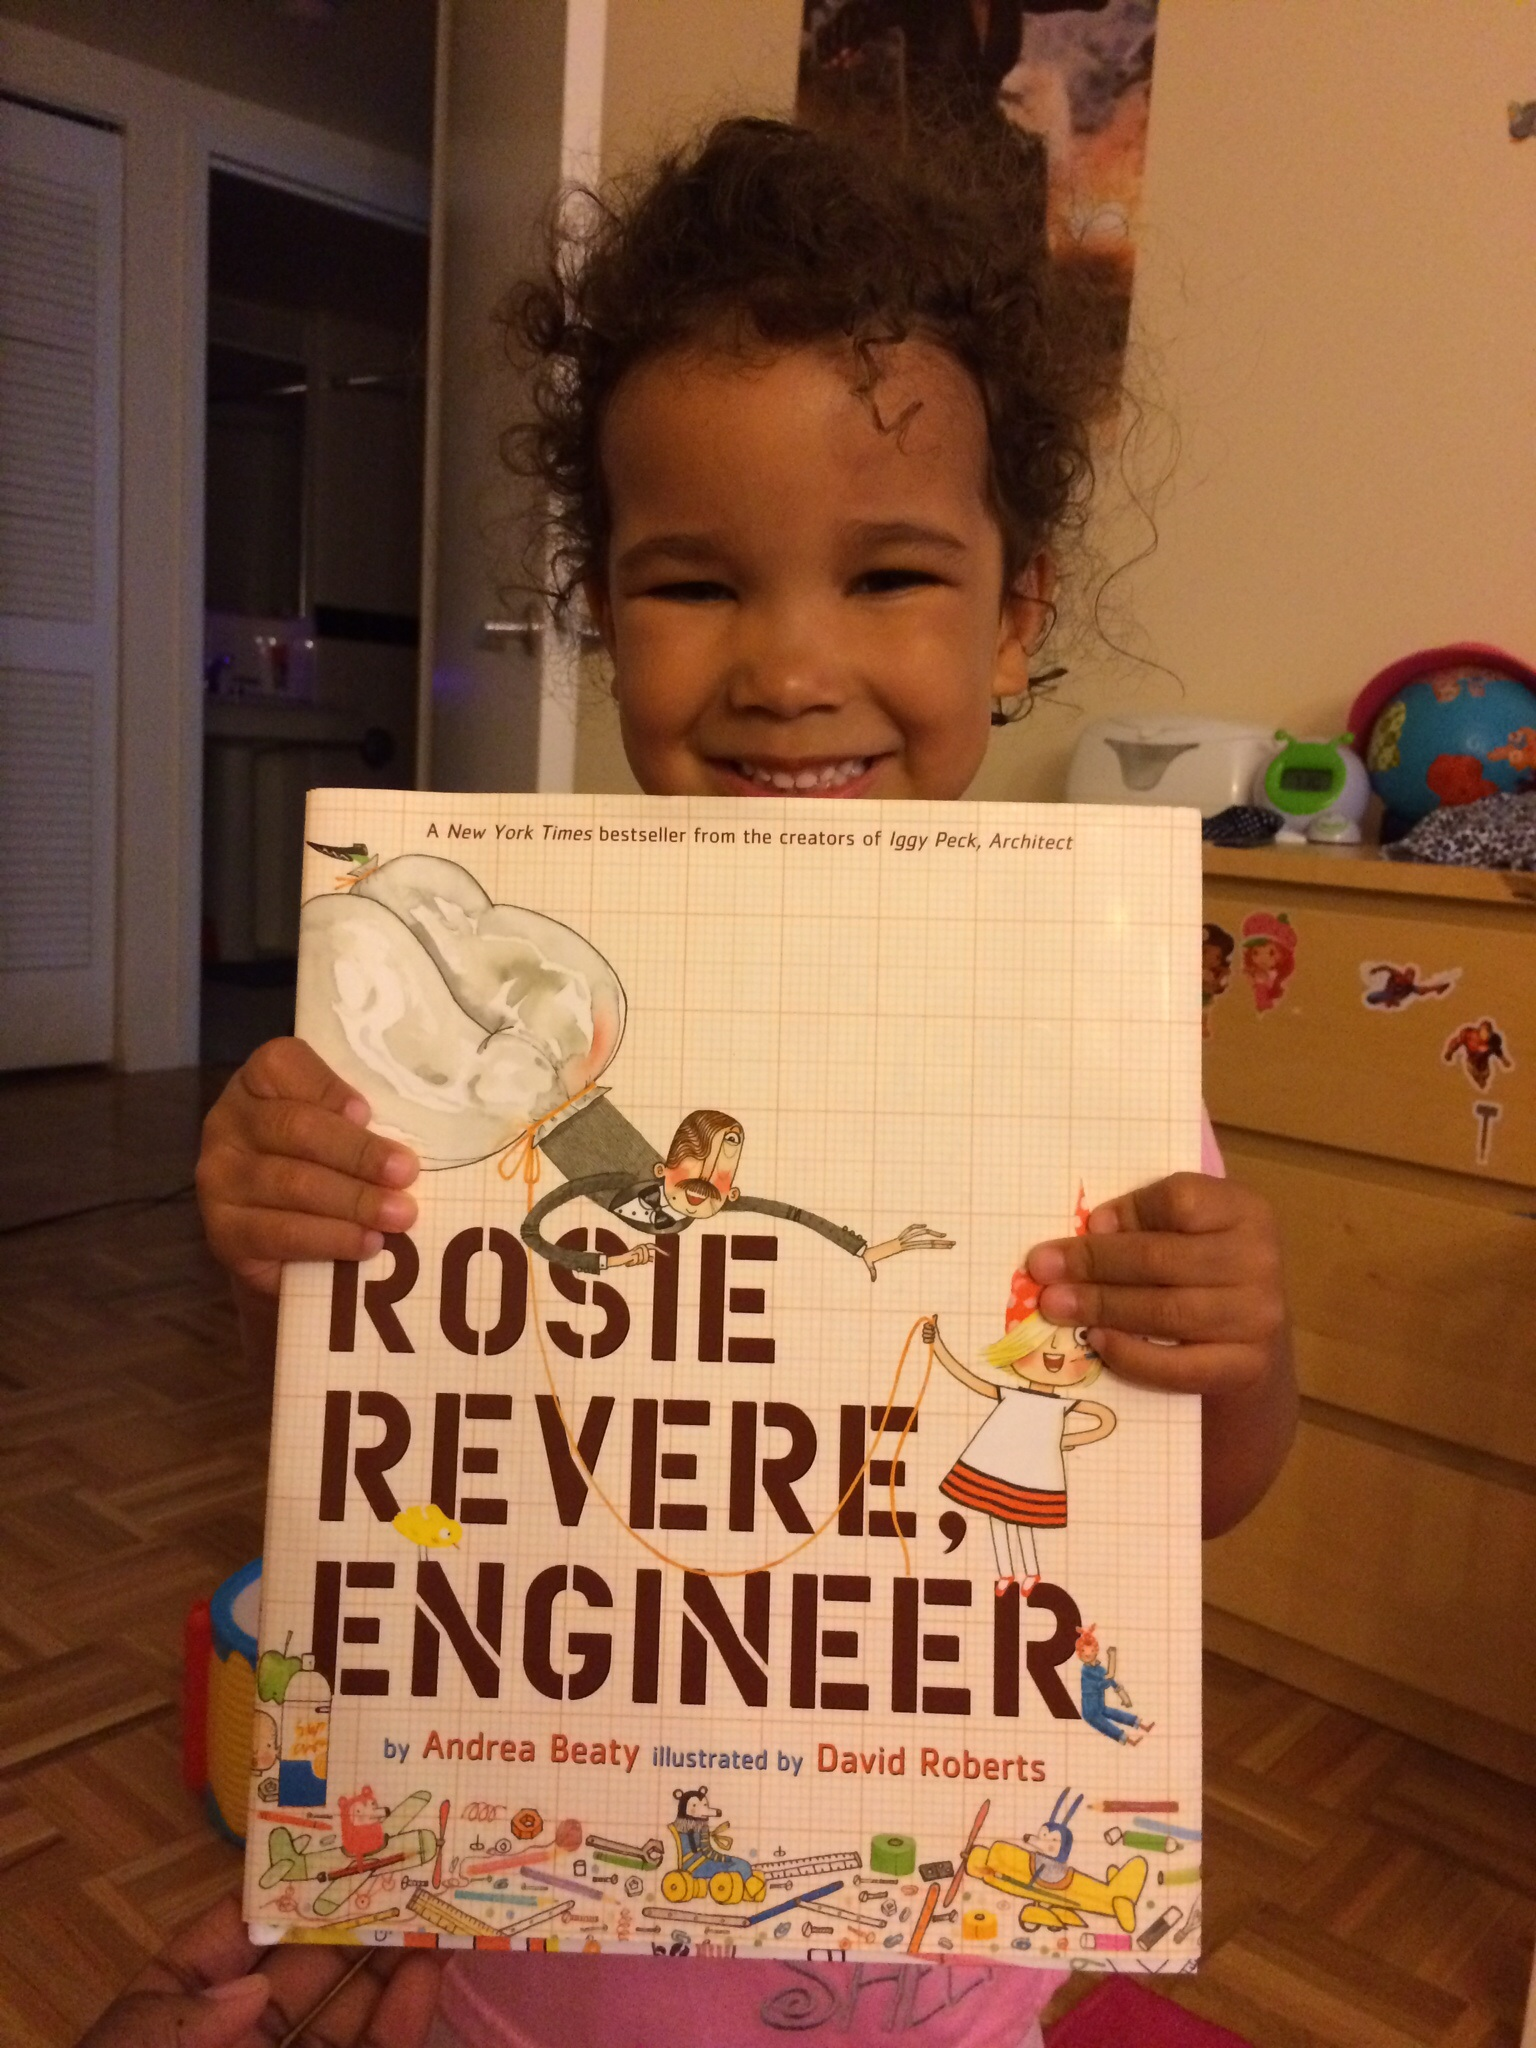 Camilla loves this book and urges you to add it to your library!